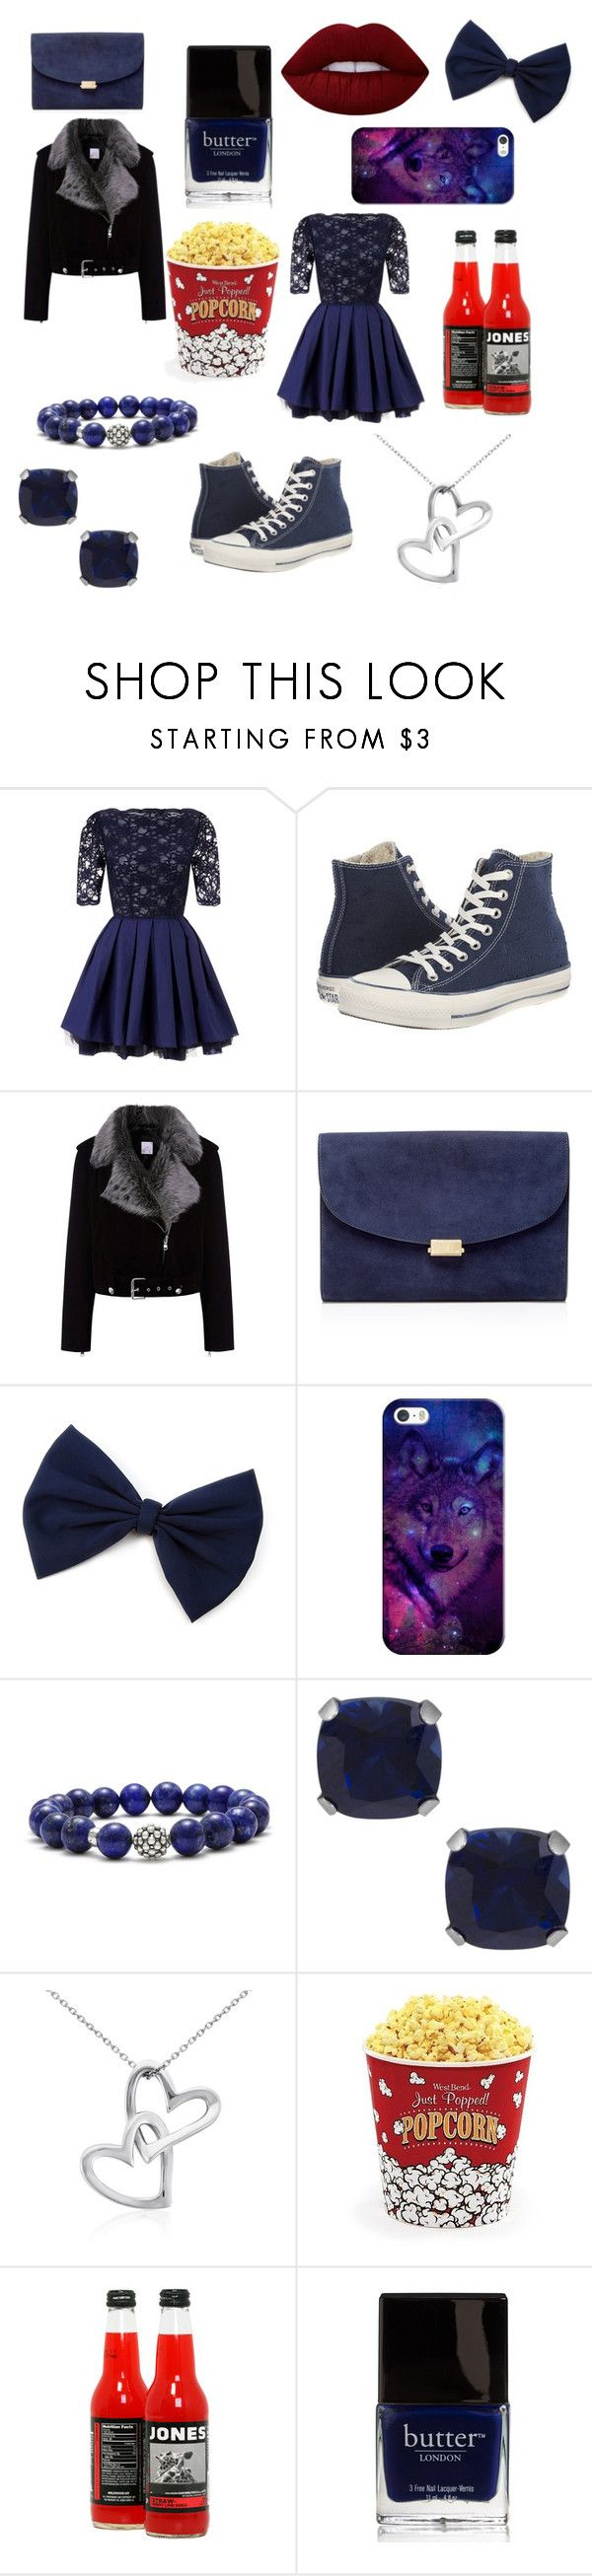 """""""Navy Blue Movie date"""" by candy-girl-03 on Polyvore featuring Lipsy, Converse, La Bête, Mansur Gavriel, Casetify, Lagos, Jewel Exclusive, Blue Nile, West Bend and Butter London"""